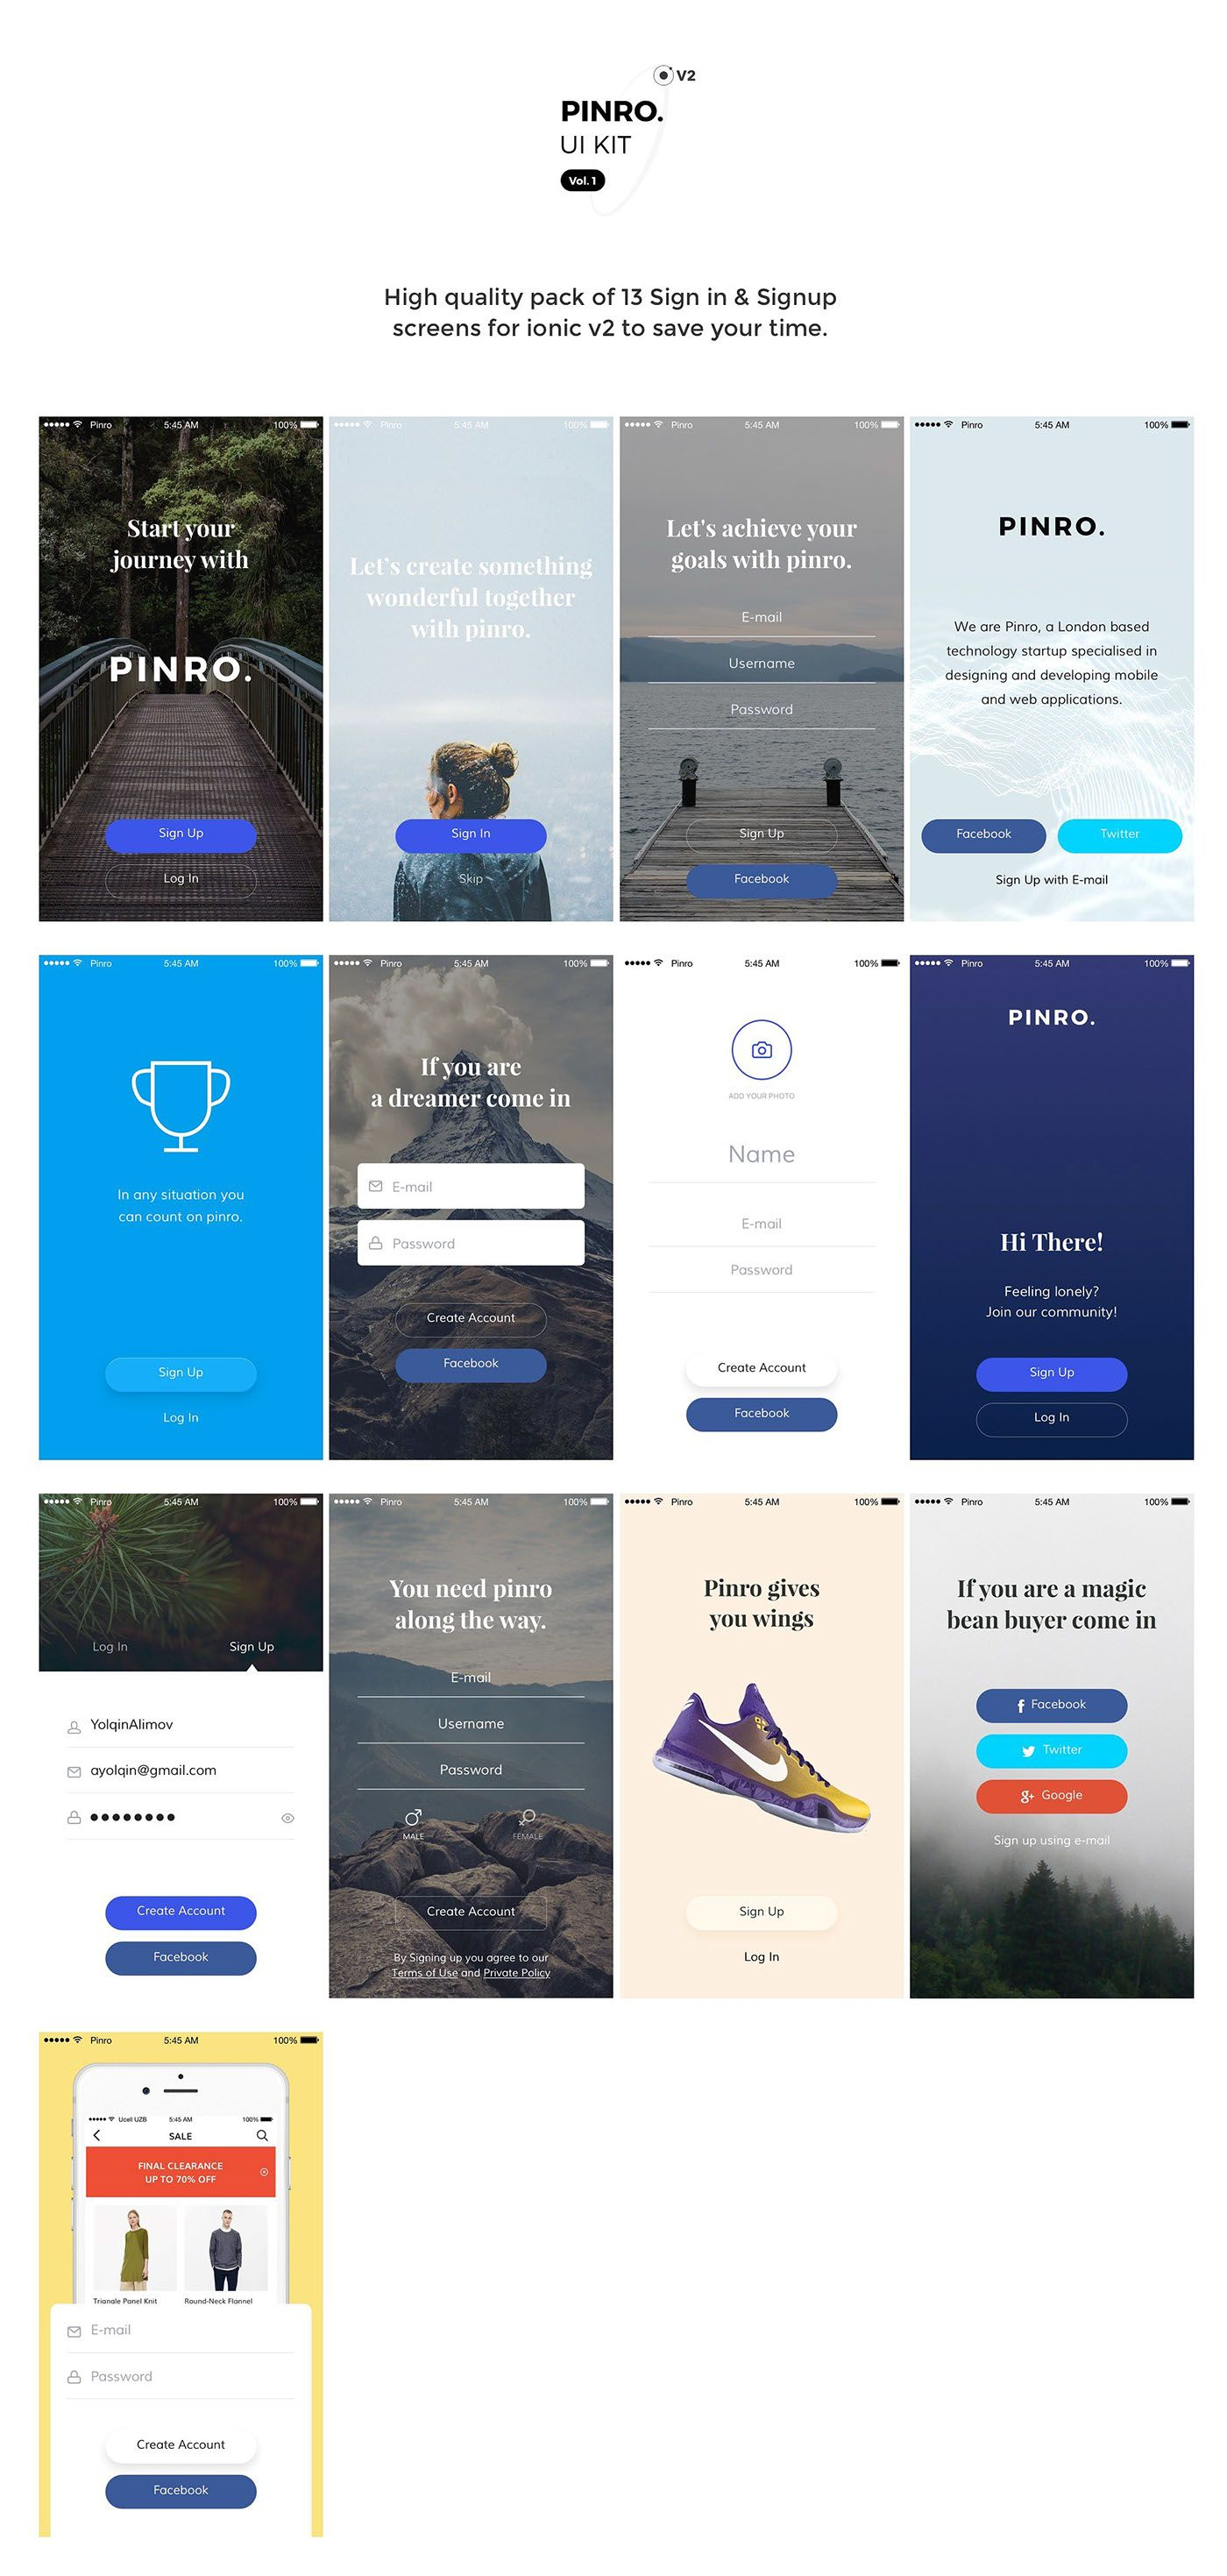 Auth UI Kit - Ionic 2 Theme FREE DOWNLOAD! on Behance